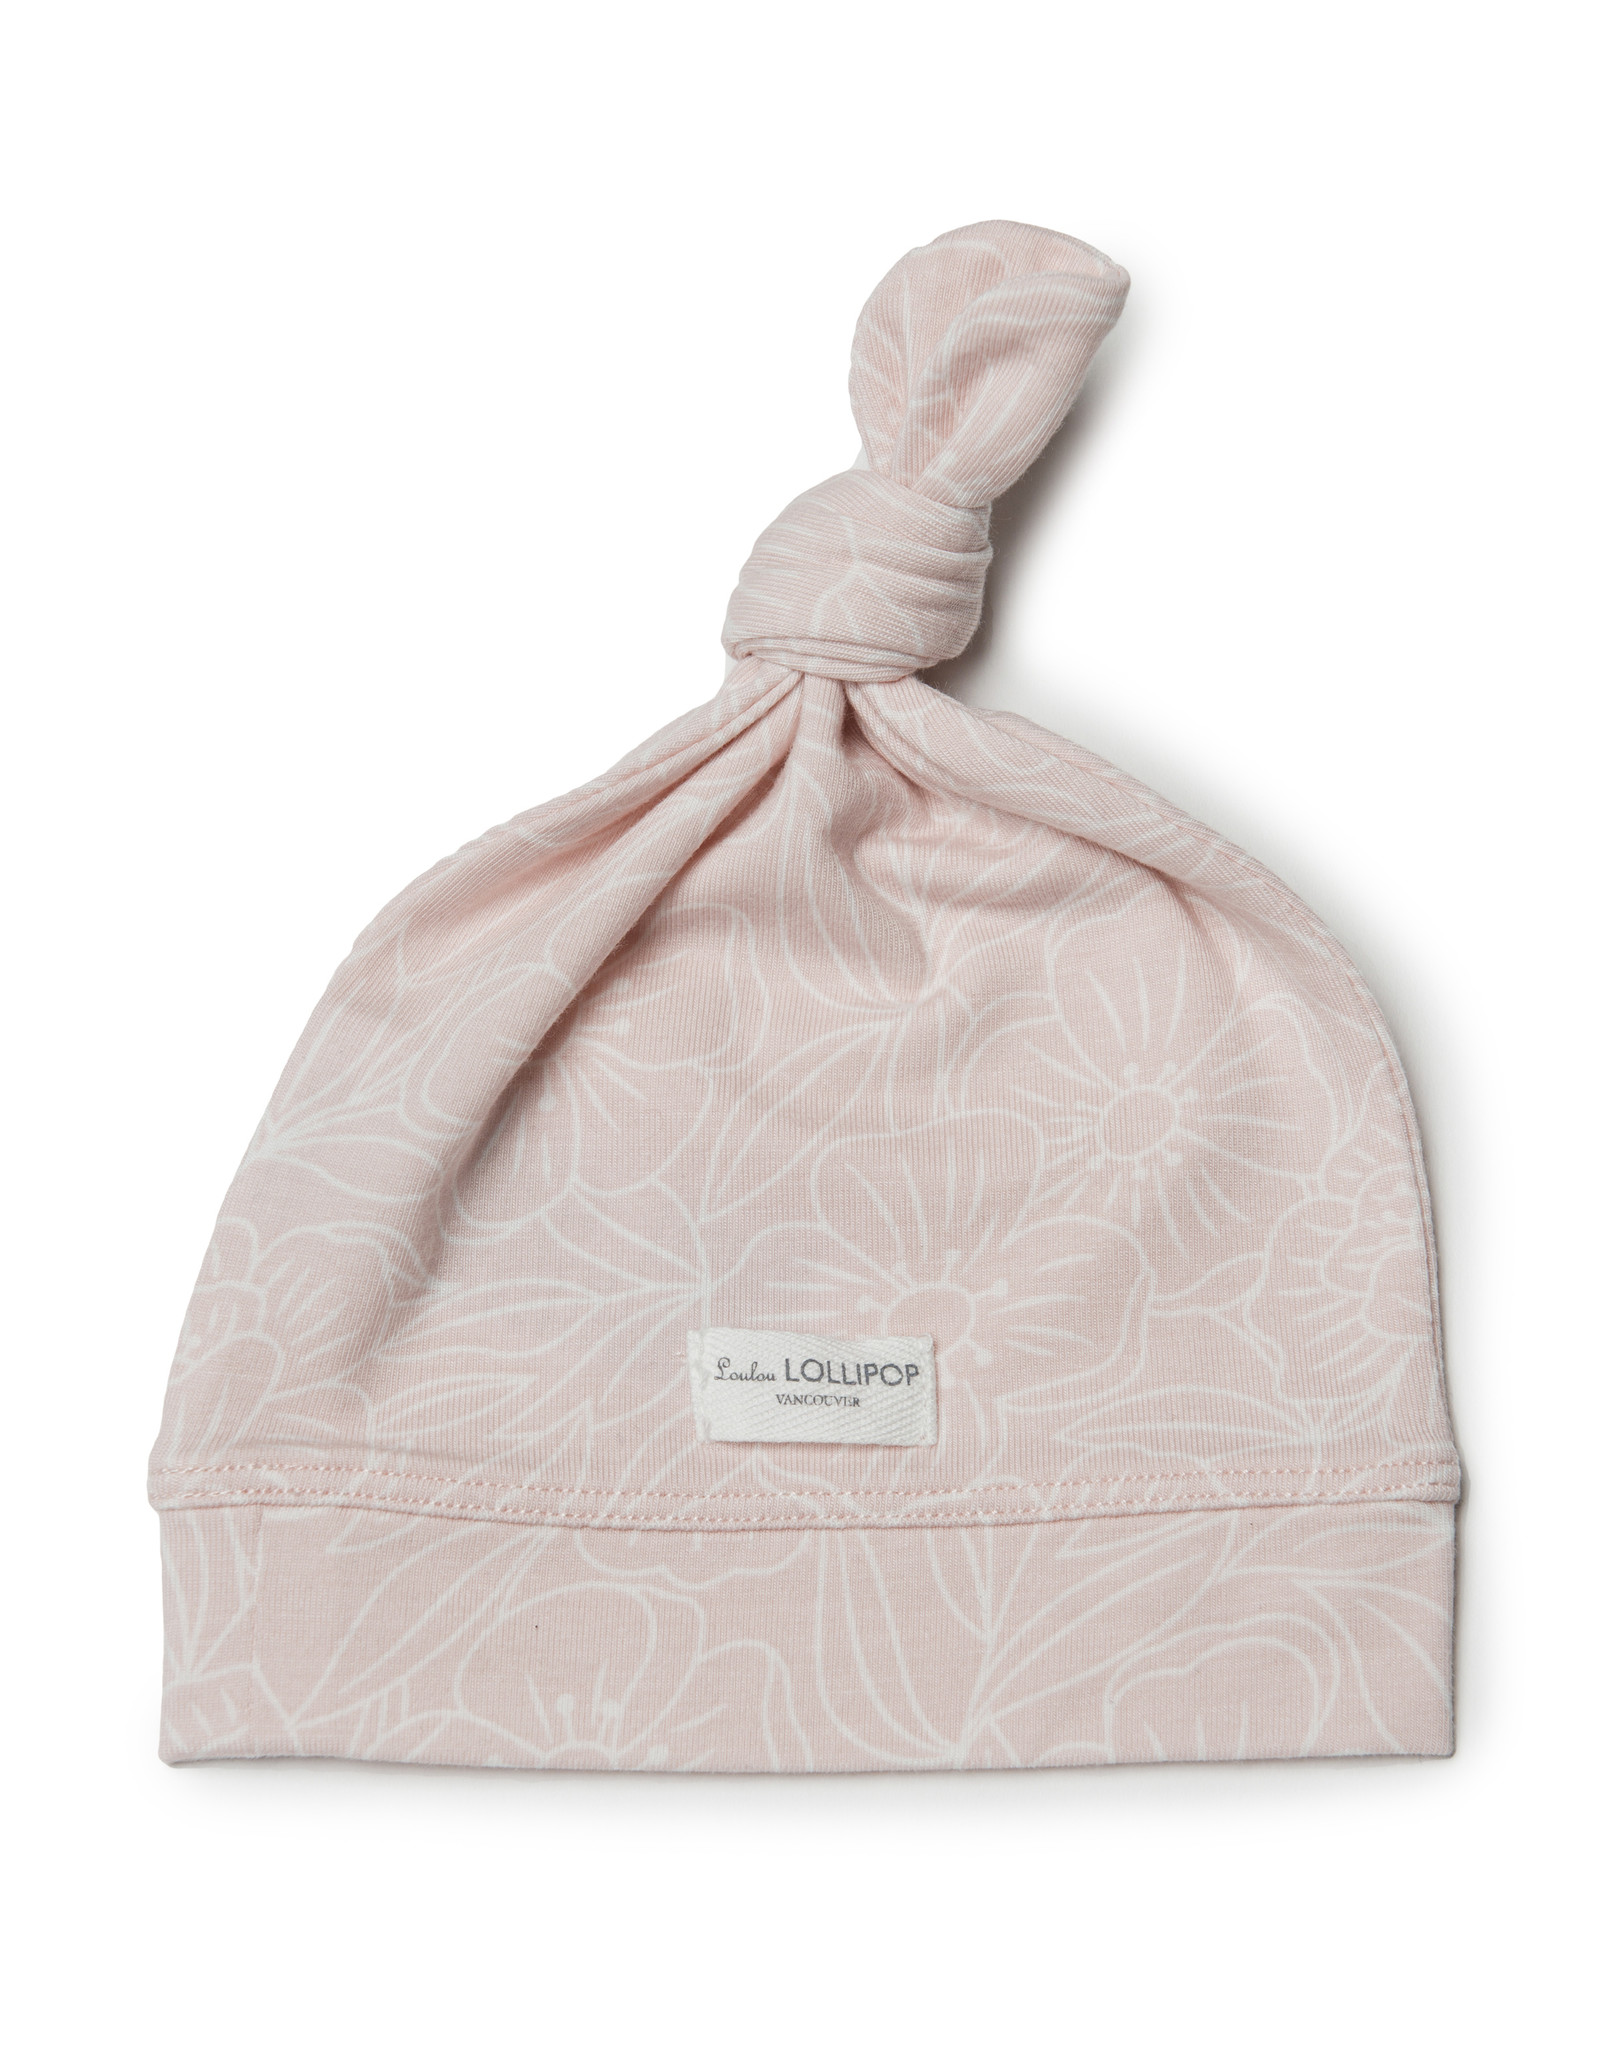 Loulou Lollipop Top Knot Beanie Sepia Rose 0 -6m